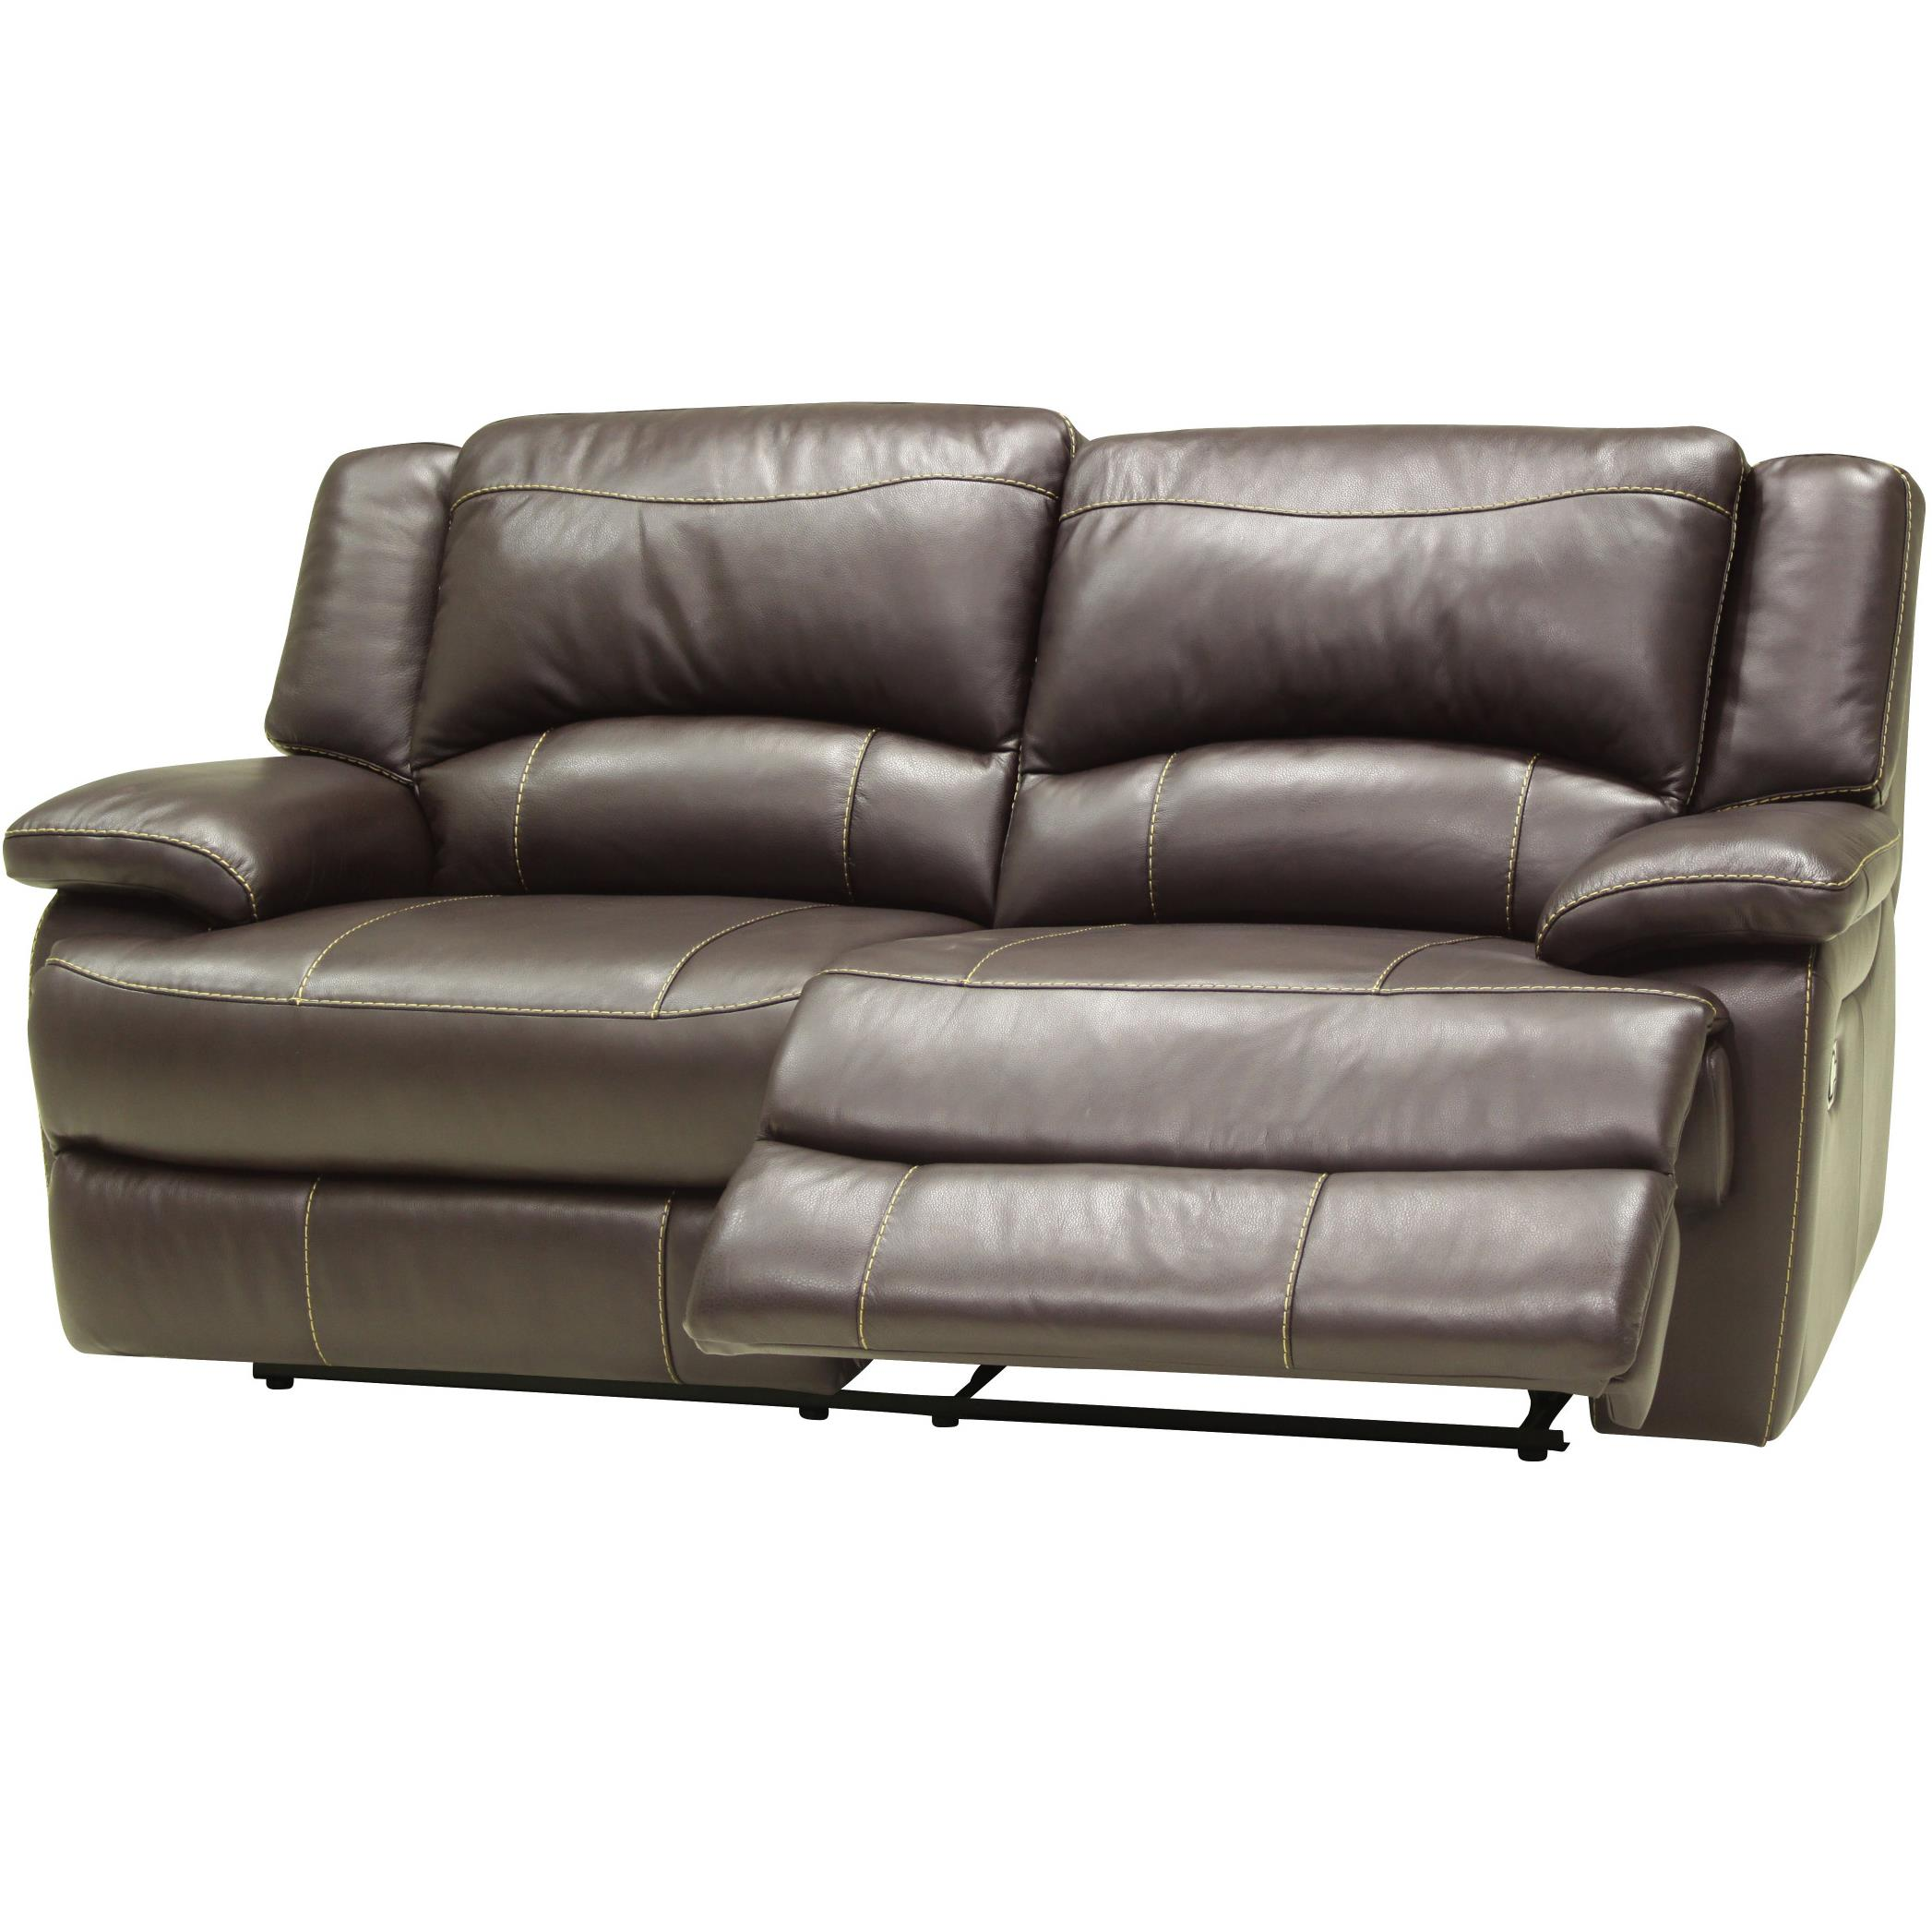 htl sofa range rex 4 piece reclining sectional with armless unit by la z boy t118 casual double leather loveseat